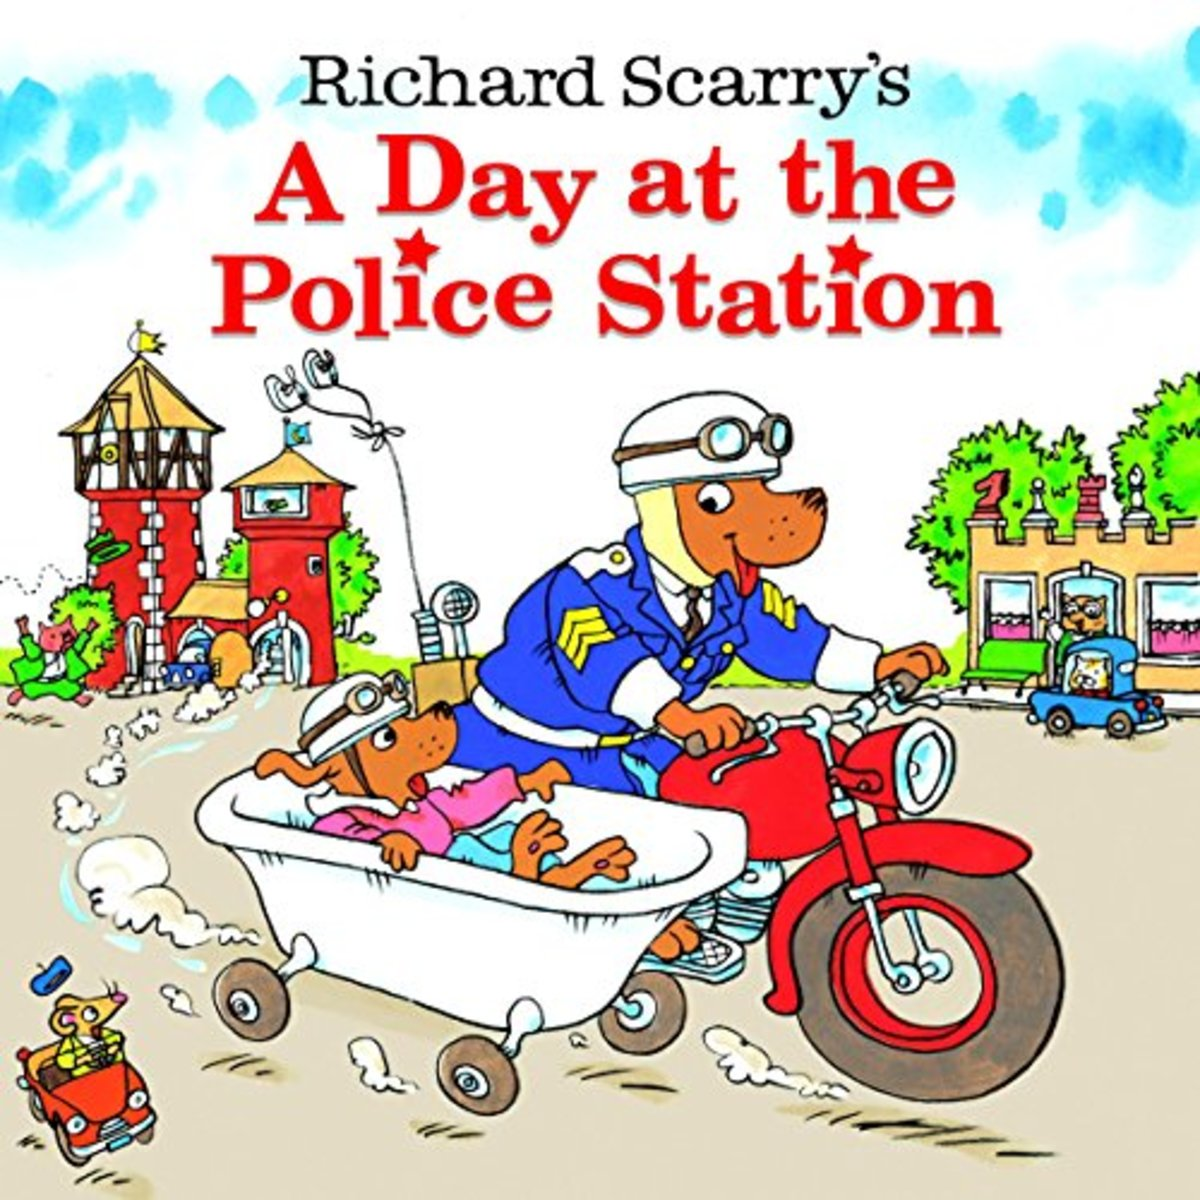 Richard Scarry's A Day at the Police Station (Look-Look) by Richard Scarry